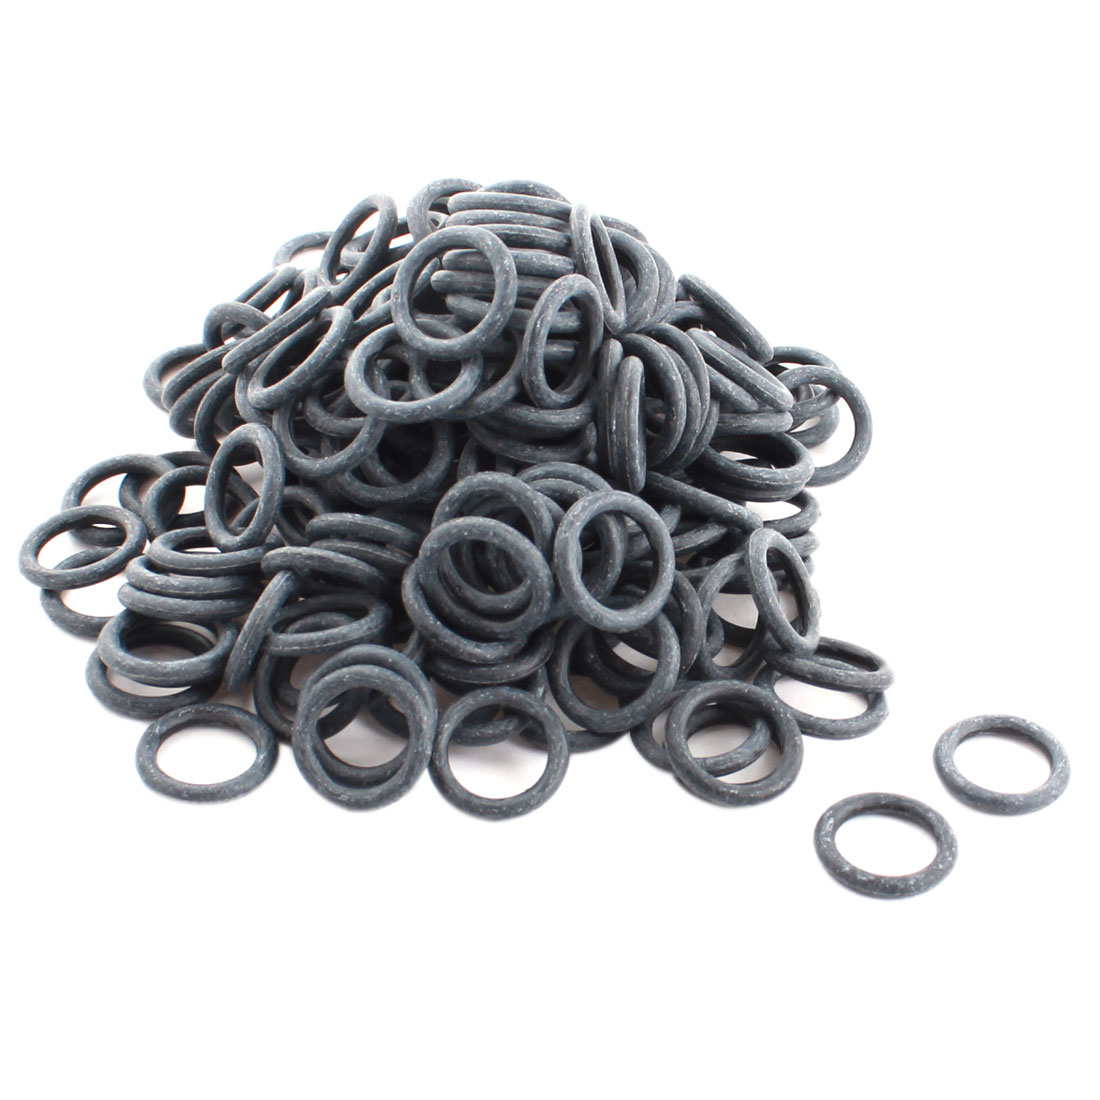 RC Brushless Motor 3mm Thickness 20mm External Dia Gray Rubber Oil Seal O Ring Spacer Gasket Washer 200Pcs